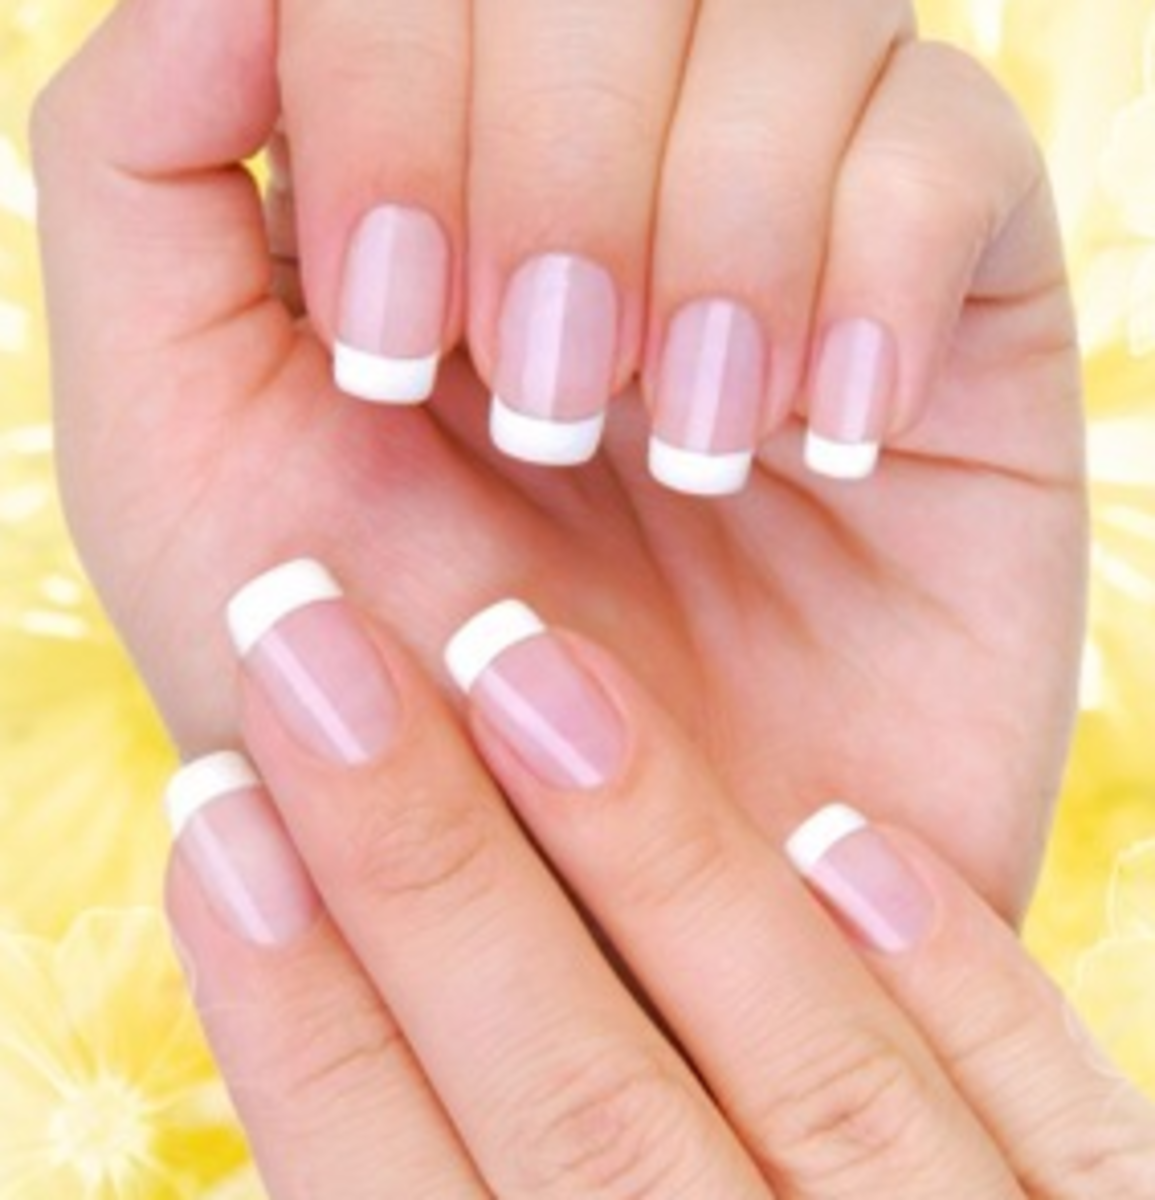 A French Manicure looks really ladylike and professional